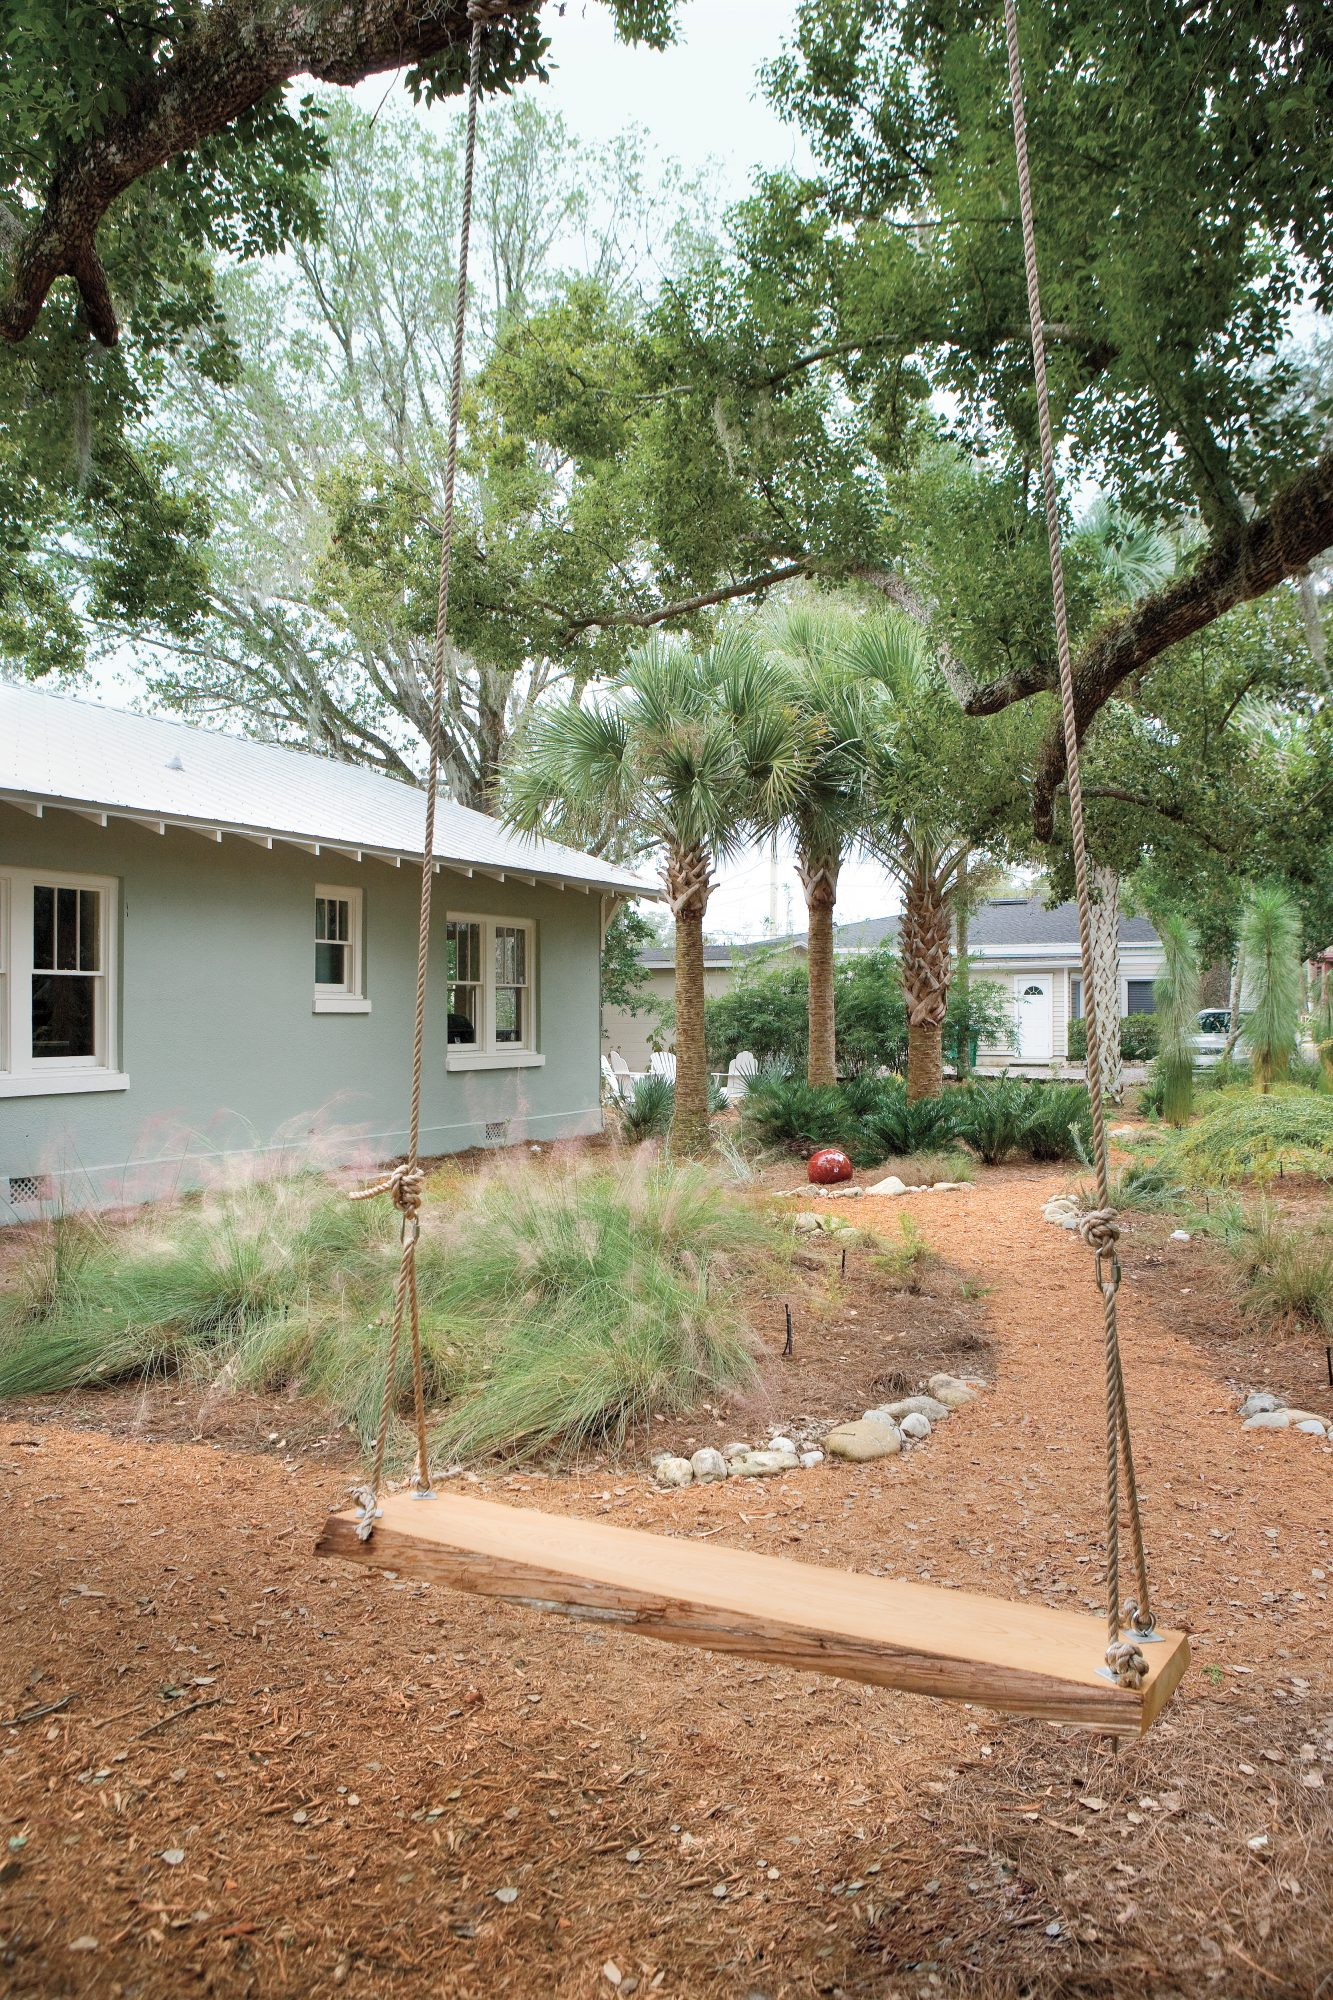 Ways to Save Water in Your Yard: Good-bye toLawn Care